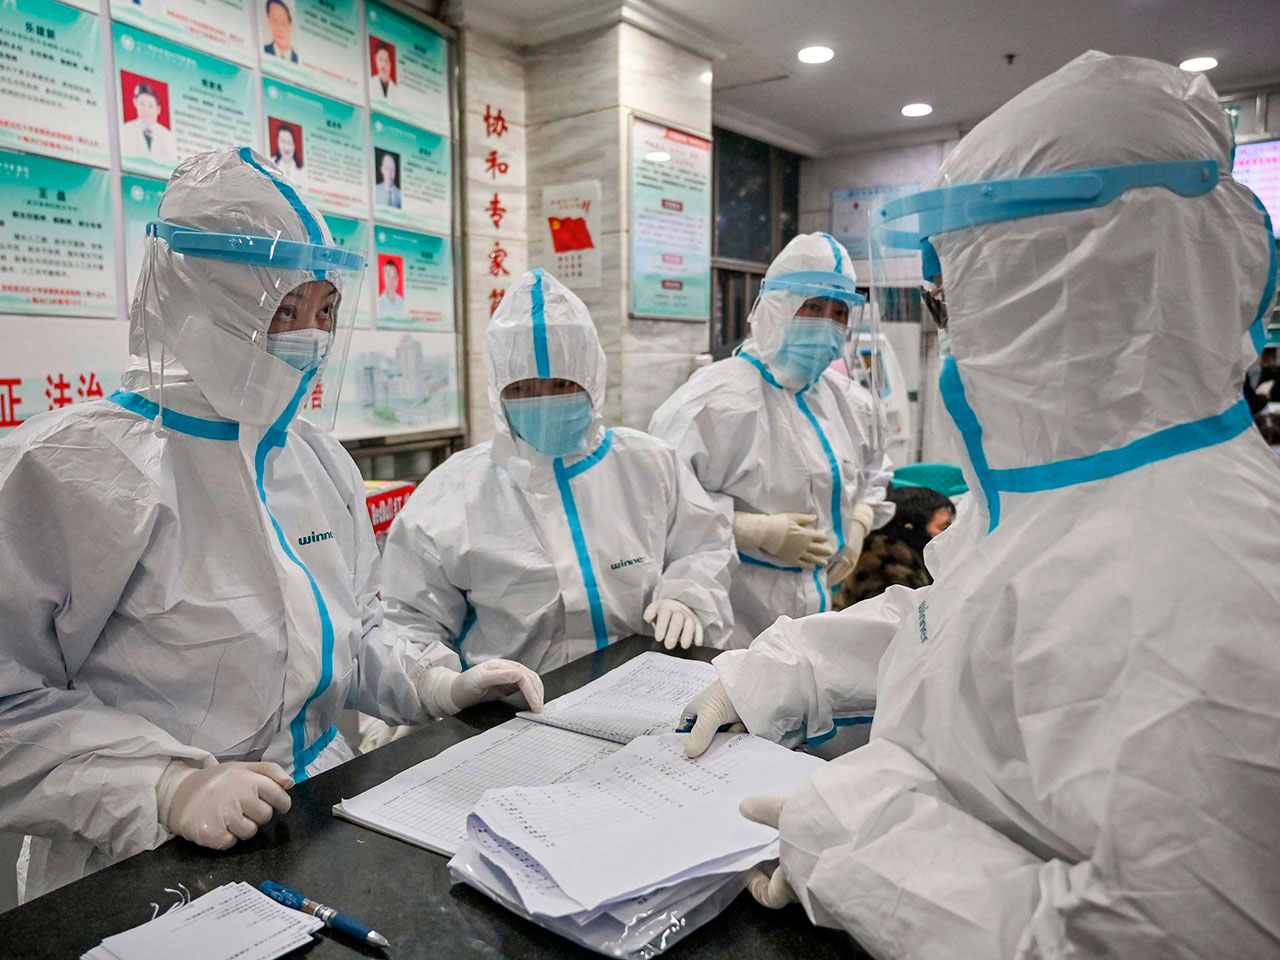 Scientists gather to try to find a cure the Coronavirus.